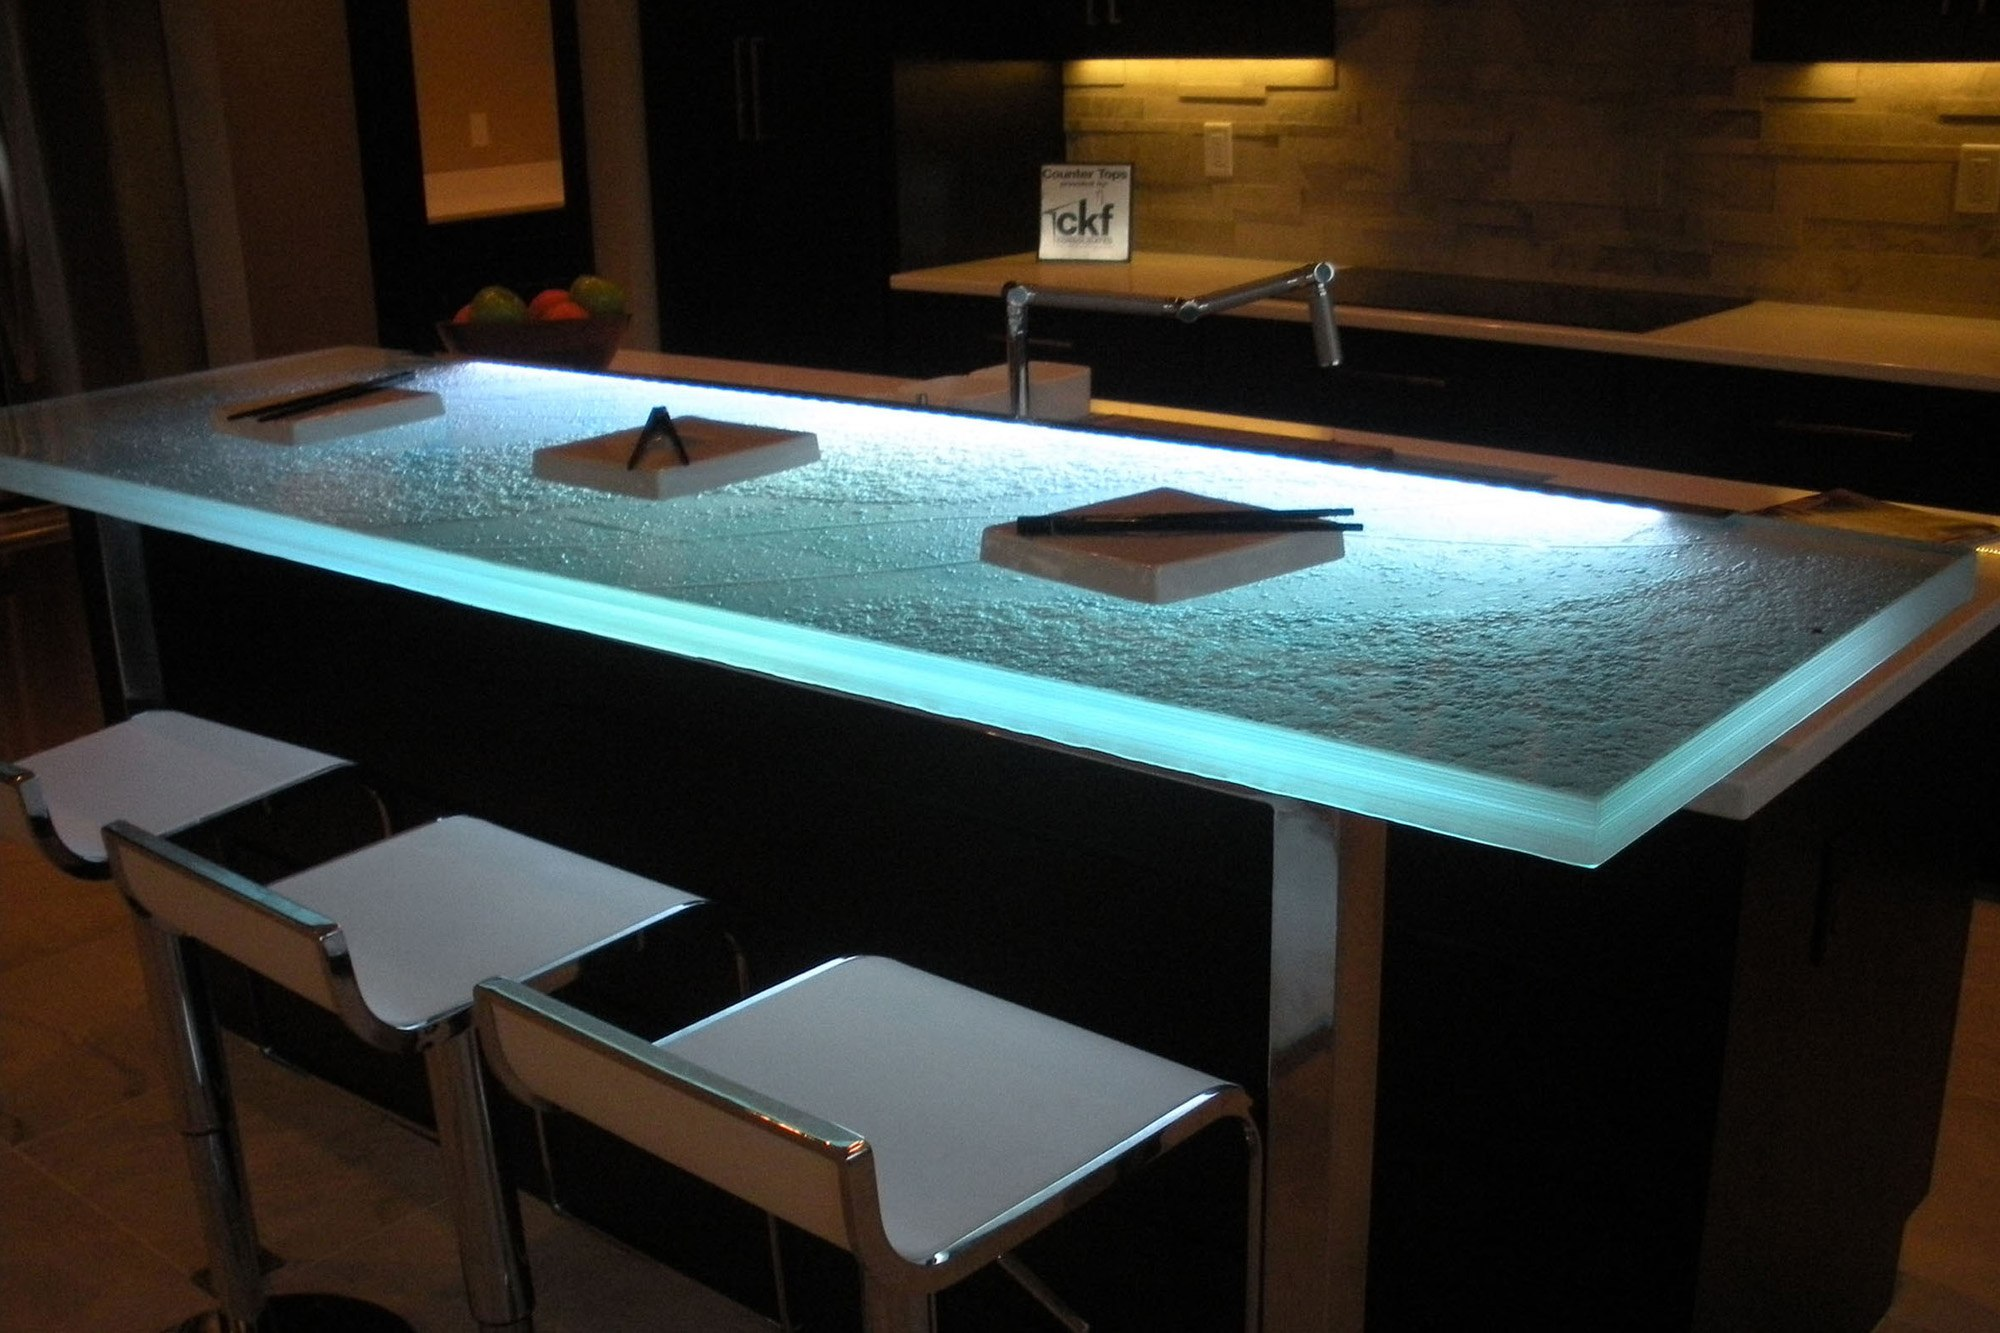 The Ultimate Luxury Touch For Your Kitchen Decor - Glass Countertops homesthetics (14)